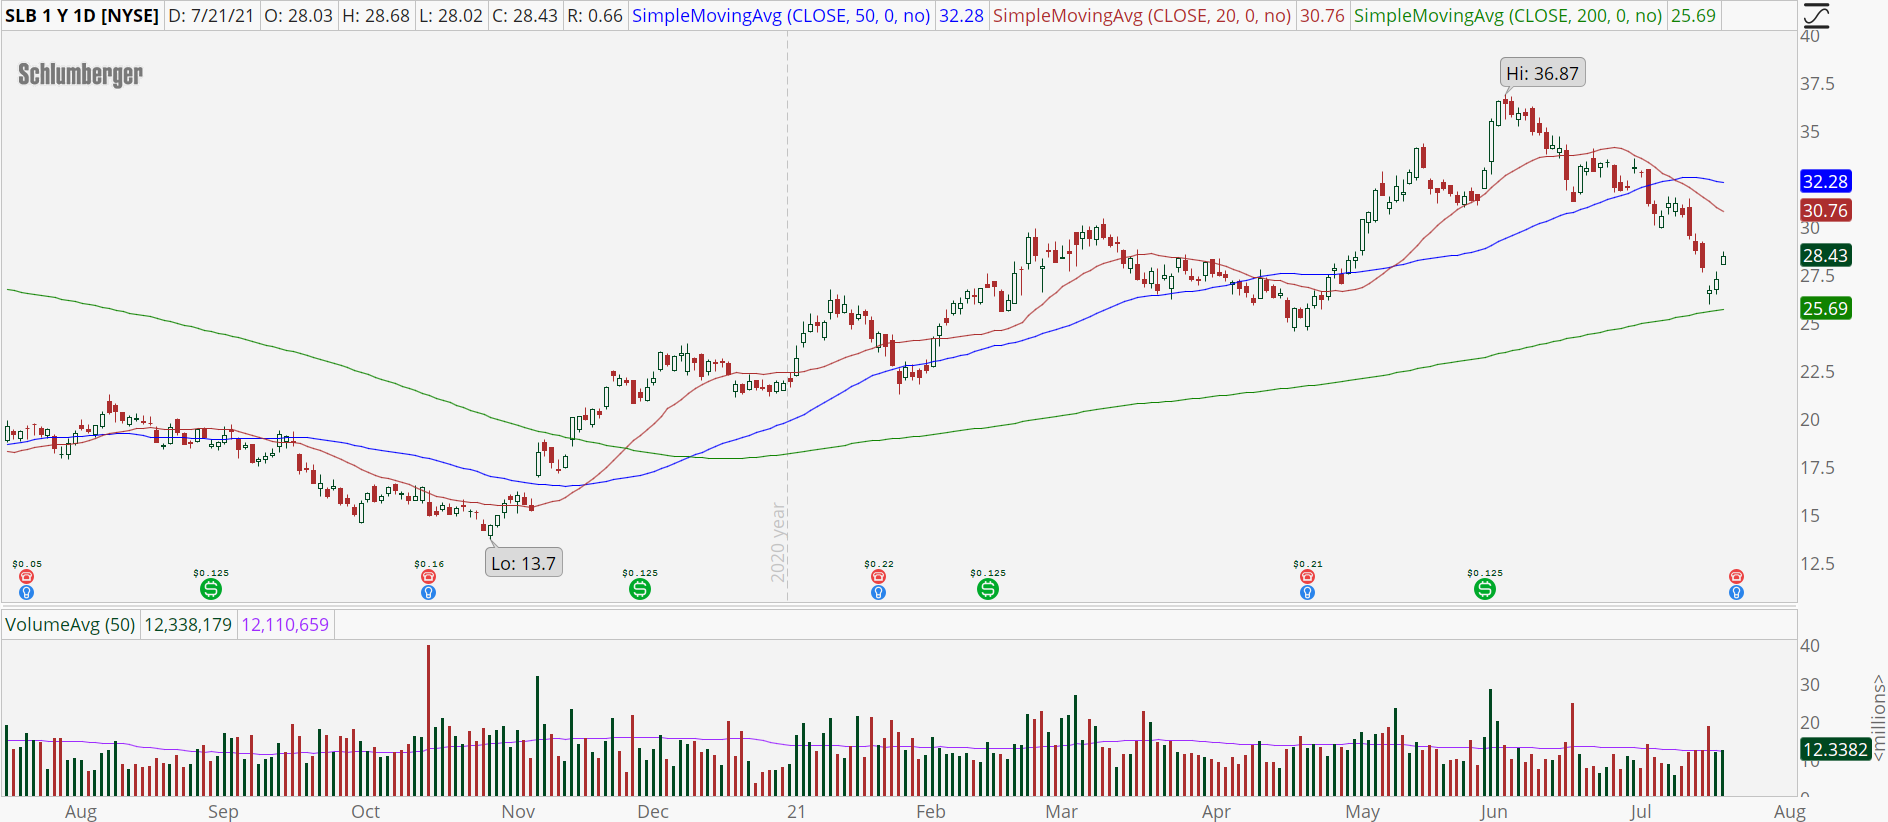 Schlumberger (SLB) stock chart with bear retracement pattern